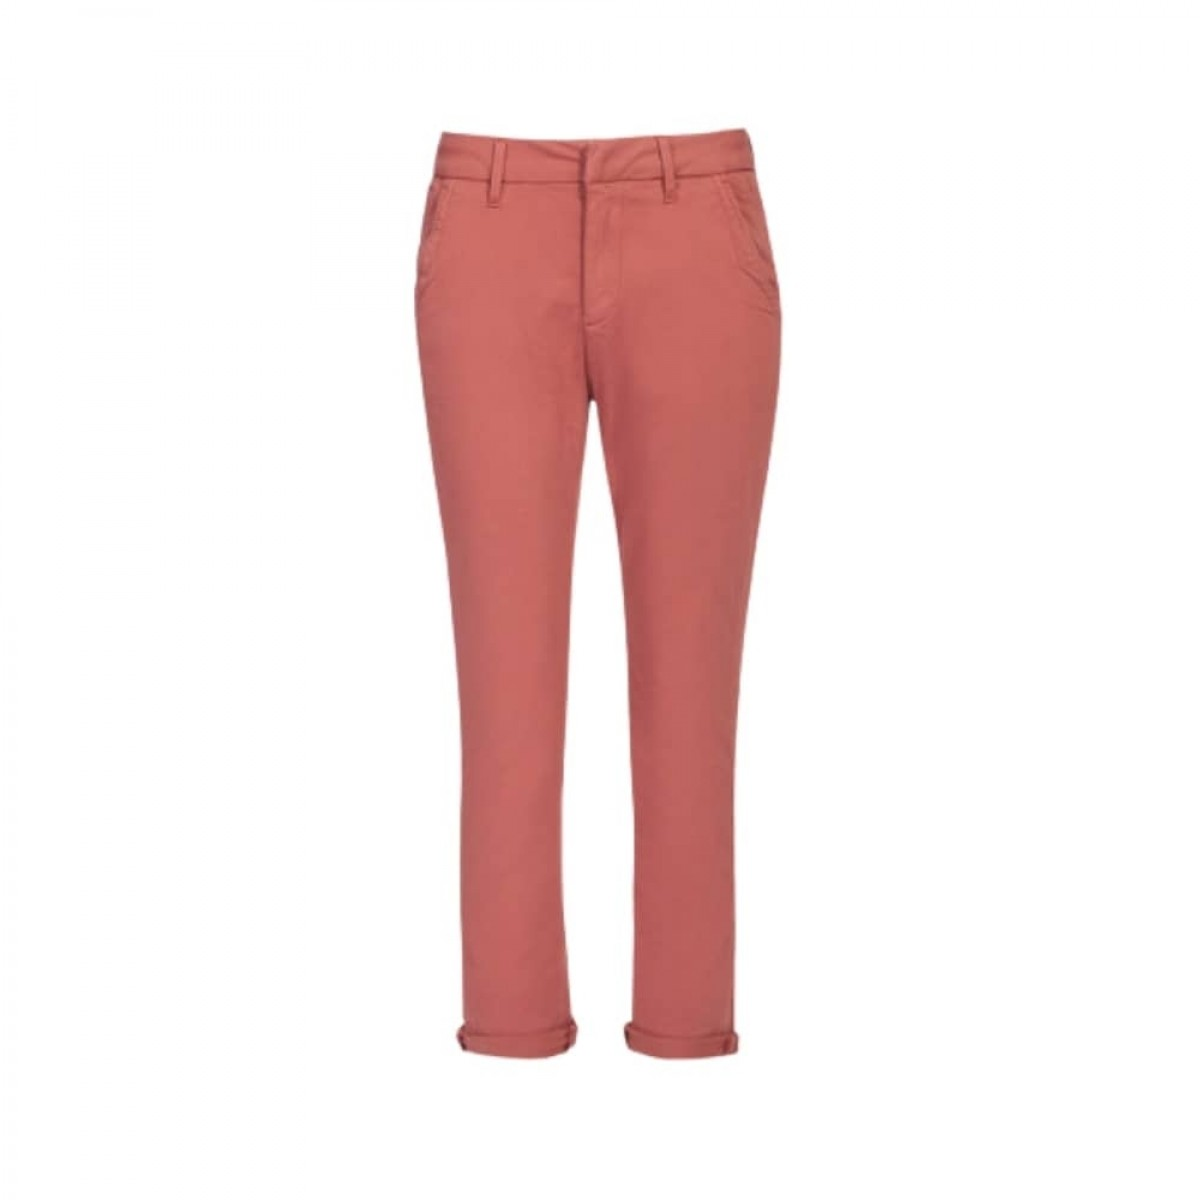 sandy 2 basic chino - ginger spice - front